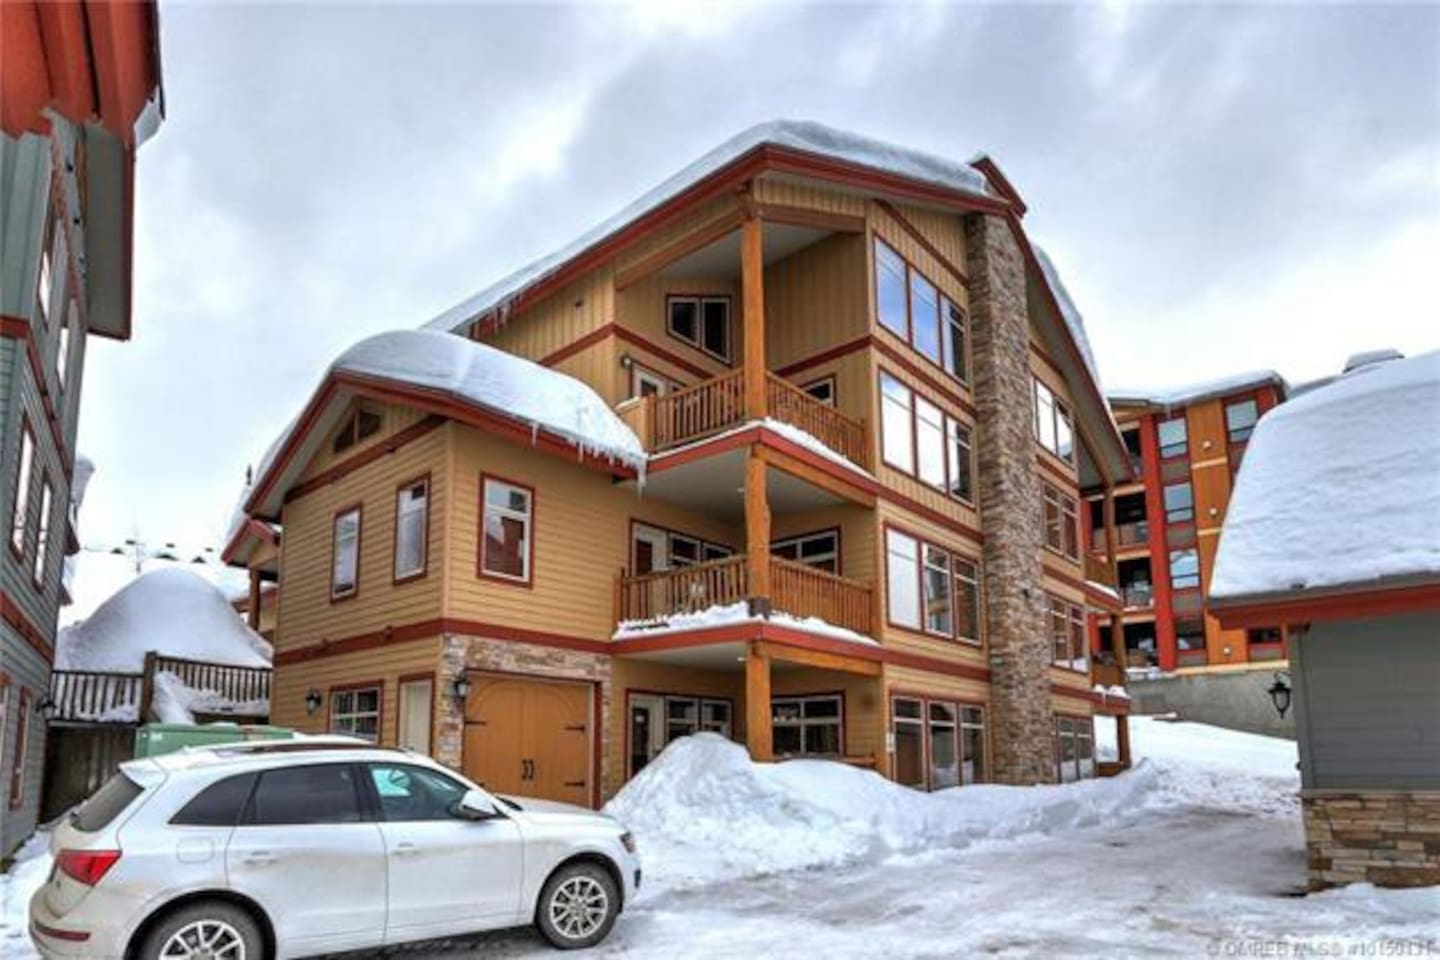 Spyglass Ski-In/Ski-Out Ground Floor Unit with Attached Garage Just Steps to the Gondola